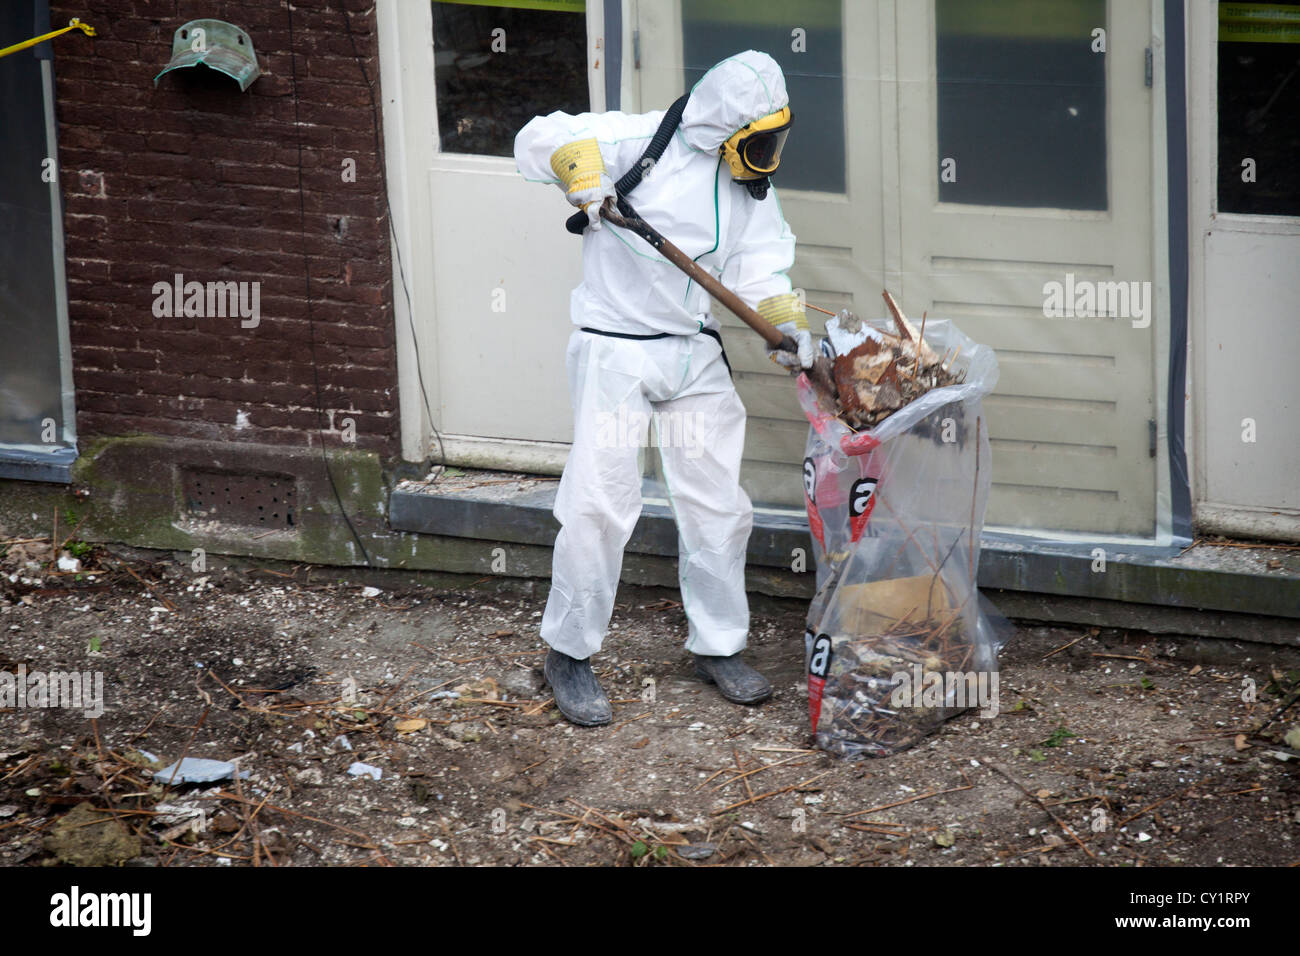 asbest cleaning in Amsterdam - Stock Image